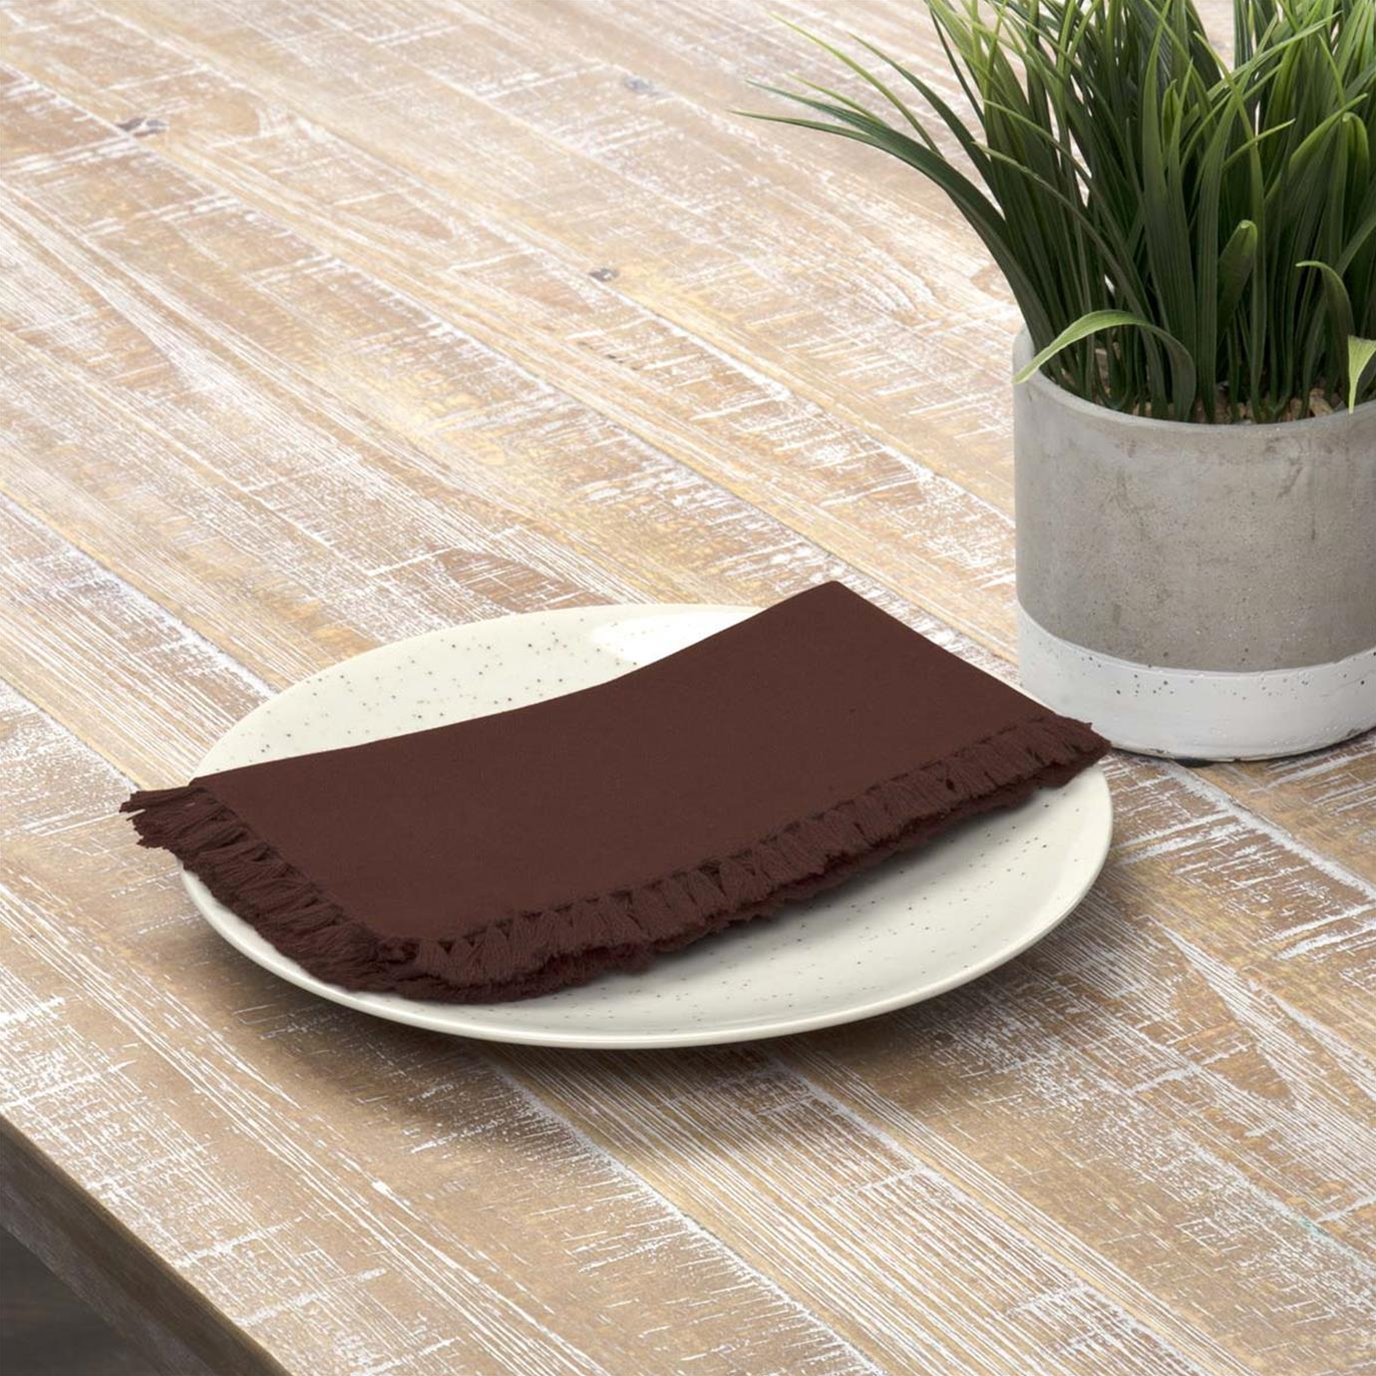 Cassidy Burgundy Napkin Set of 6 18x18